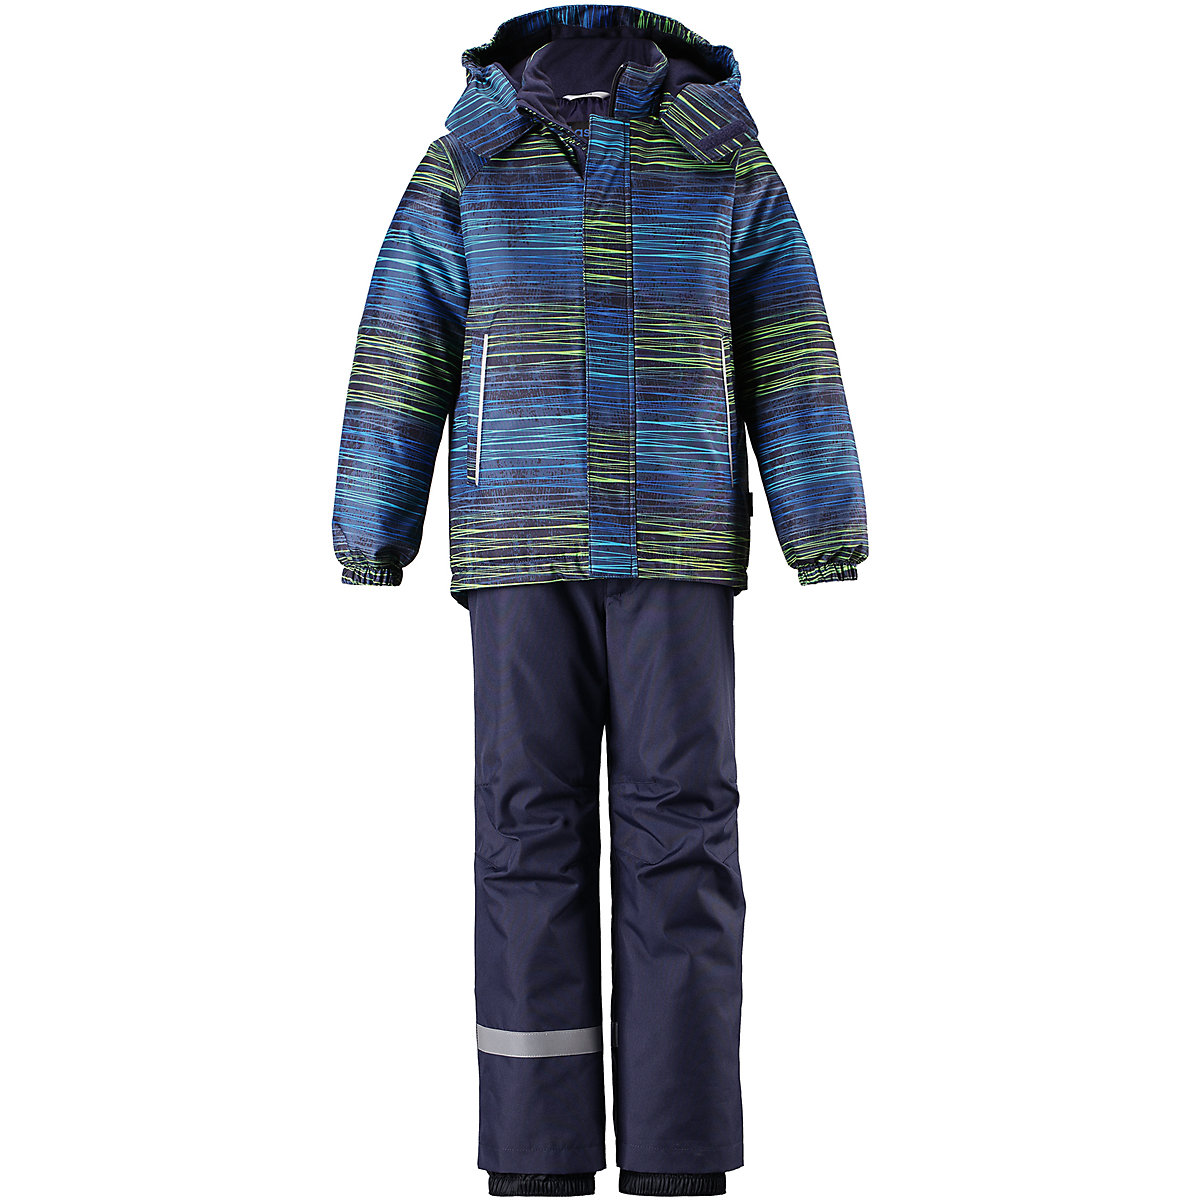 Children's Sets LASSIE for boys 8629087 Winter Track Suit Kids Children clothes Warm gulliver супер крылья аэропорт yw710812